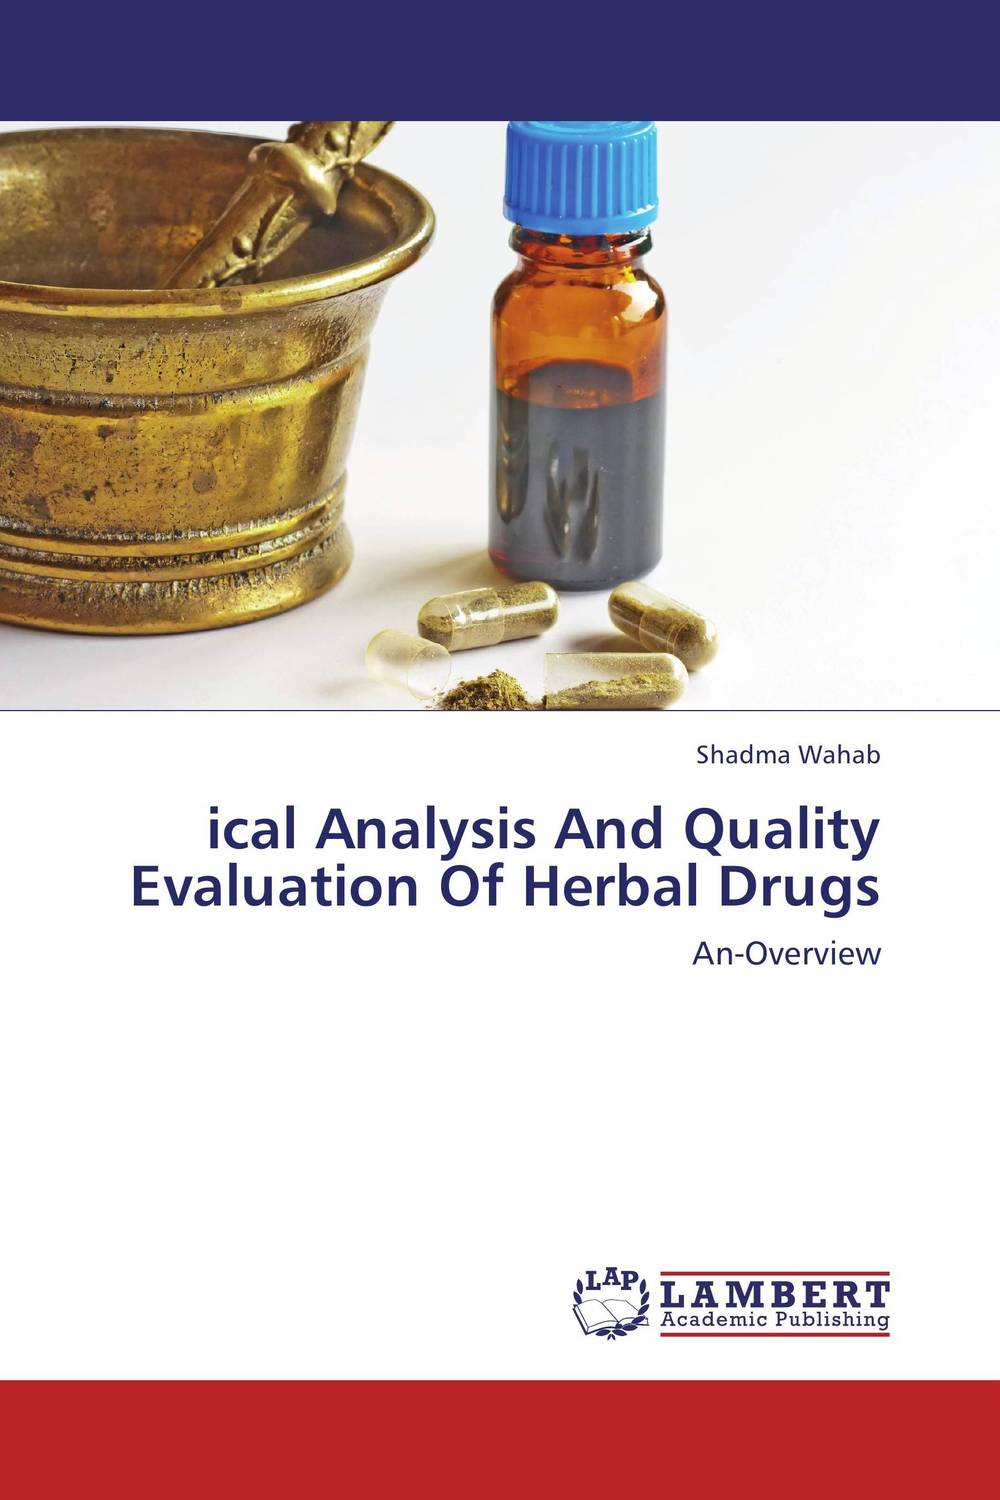 ical Analysis And Quality Evaluation Of Herbal Drugs md rabiul islam s m ibrahim sumon and farhana lipi phytochemical evaluation of leaves of cymbopogan citratus